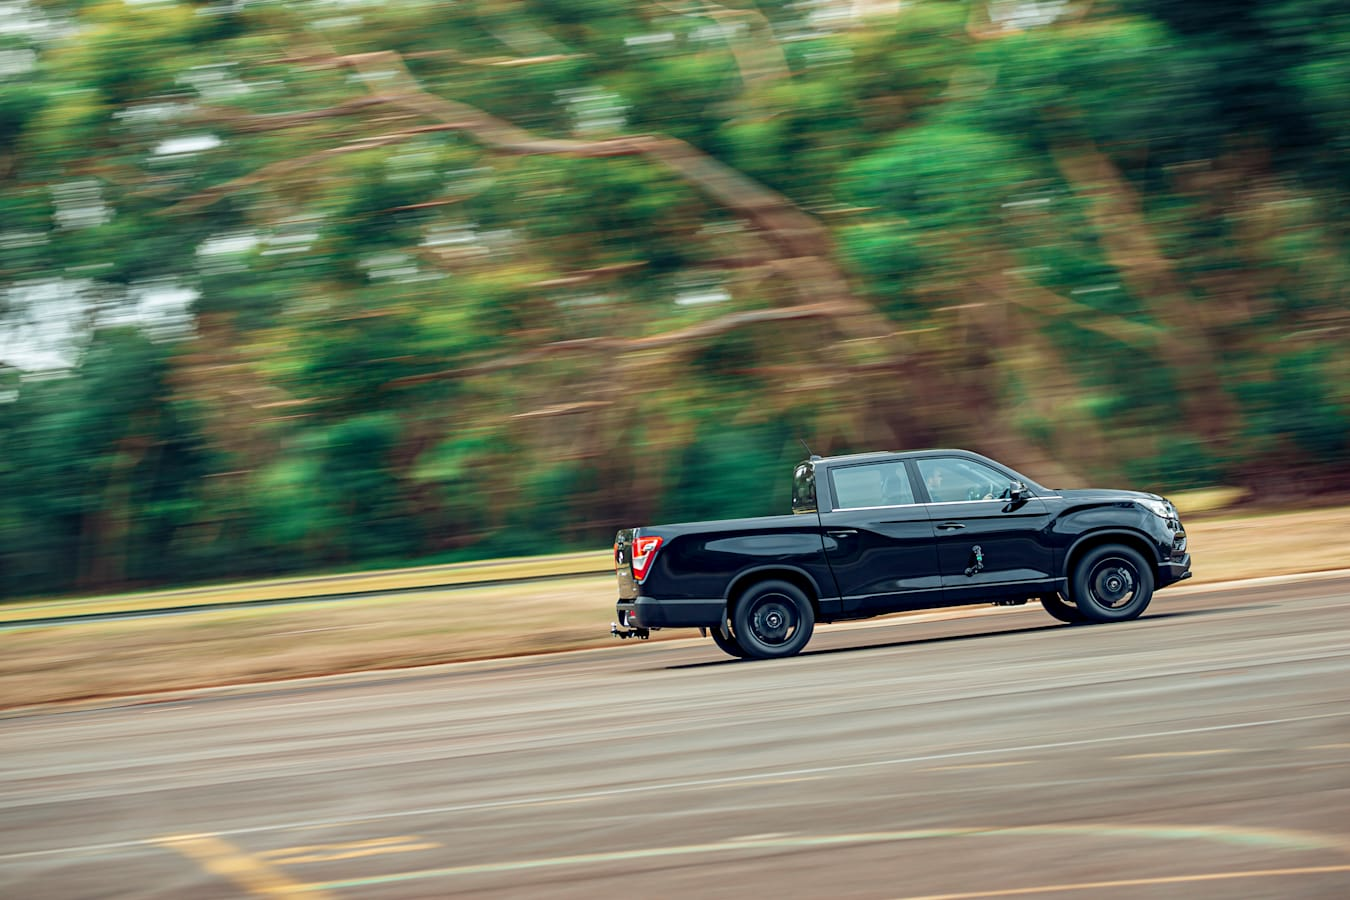 4 X 4 Australia Comparisons 2021 May 21 Ssang Yong Musso Unlimited XLV Performance Testing